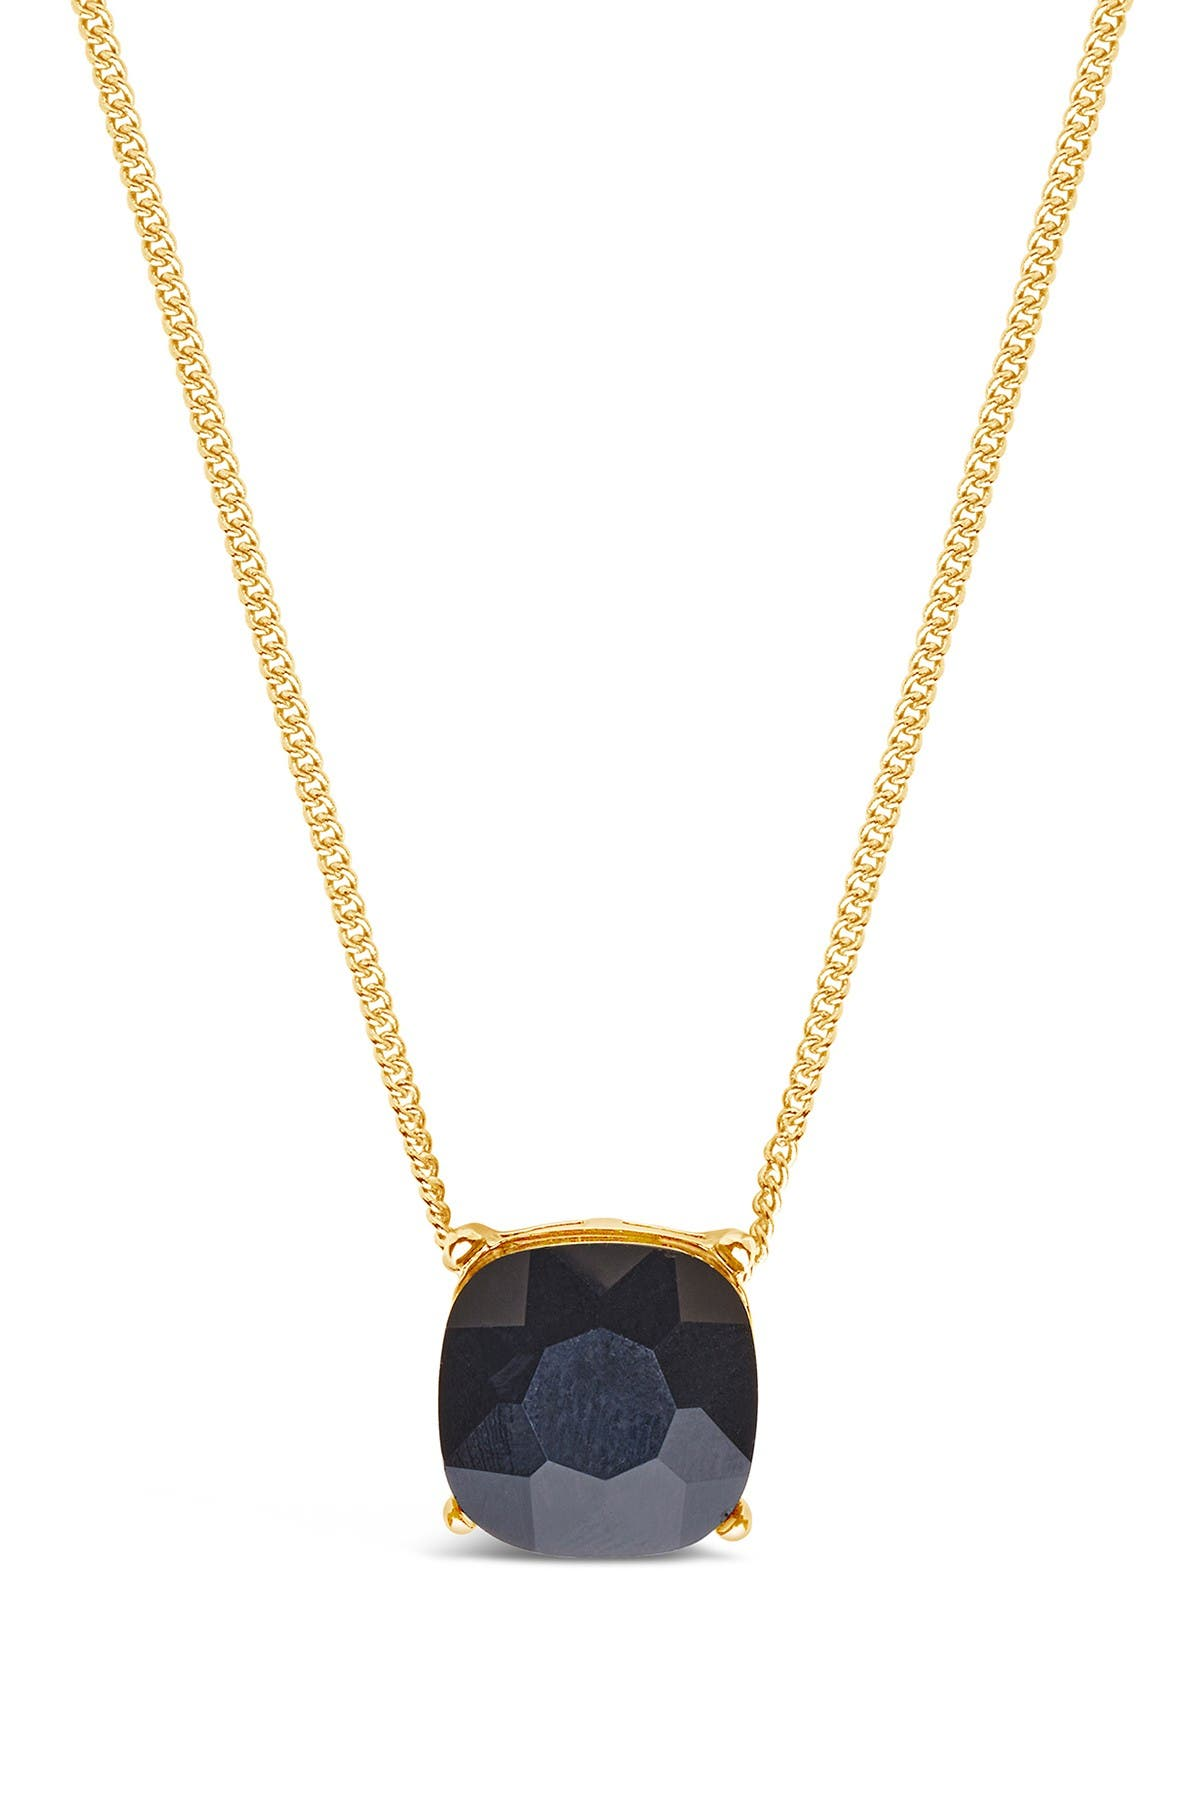 Image of Sterling Forever 14K Gold Plated Brass Black Haymond Necklace